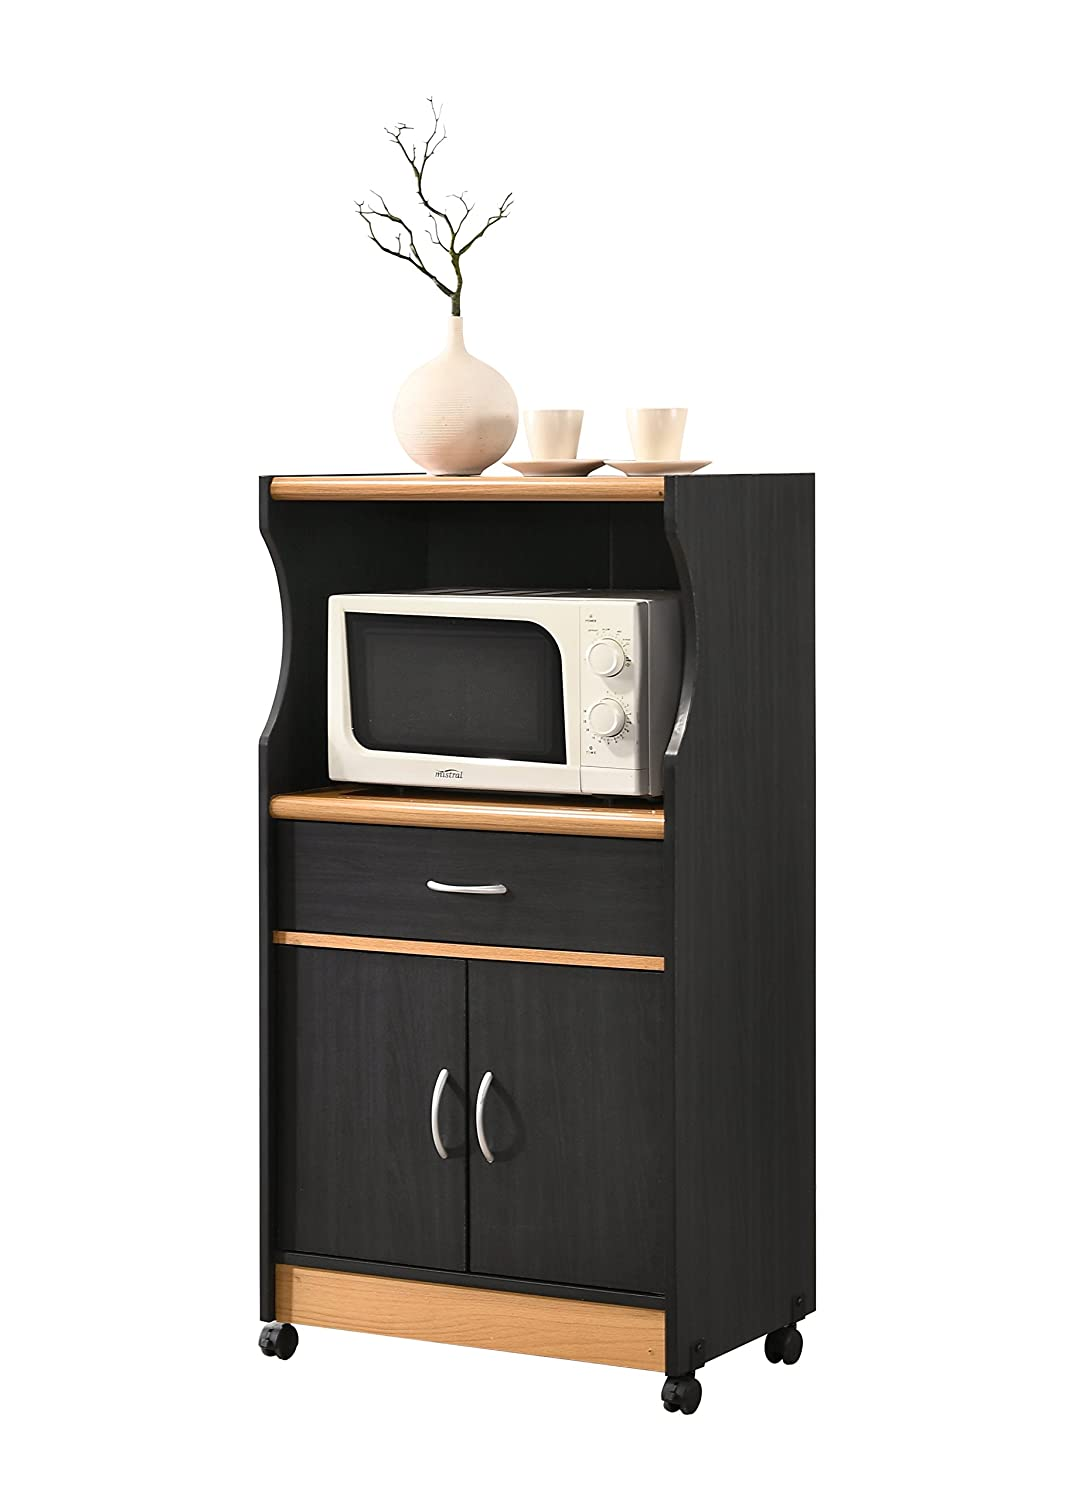 Hodedah HIK77 Black-Beech Microwave Kitchen Cart Hodedah Import